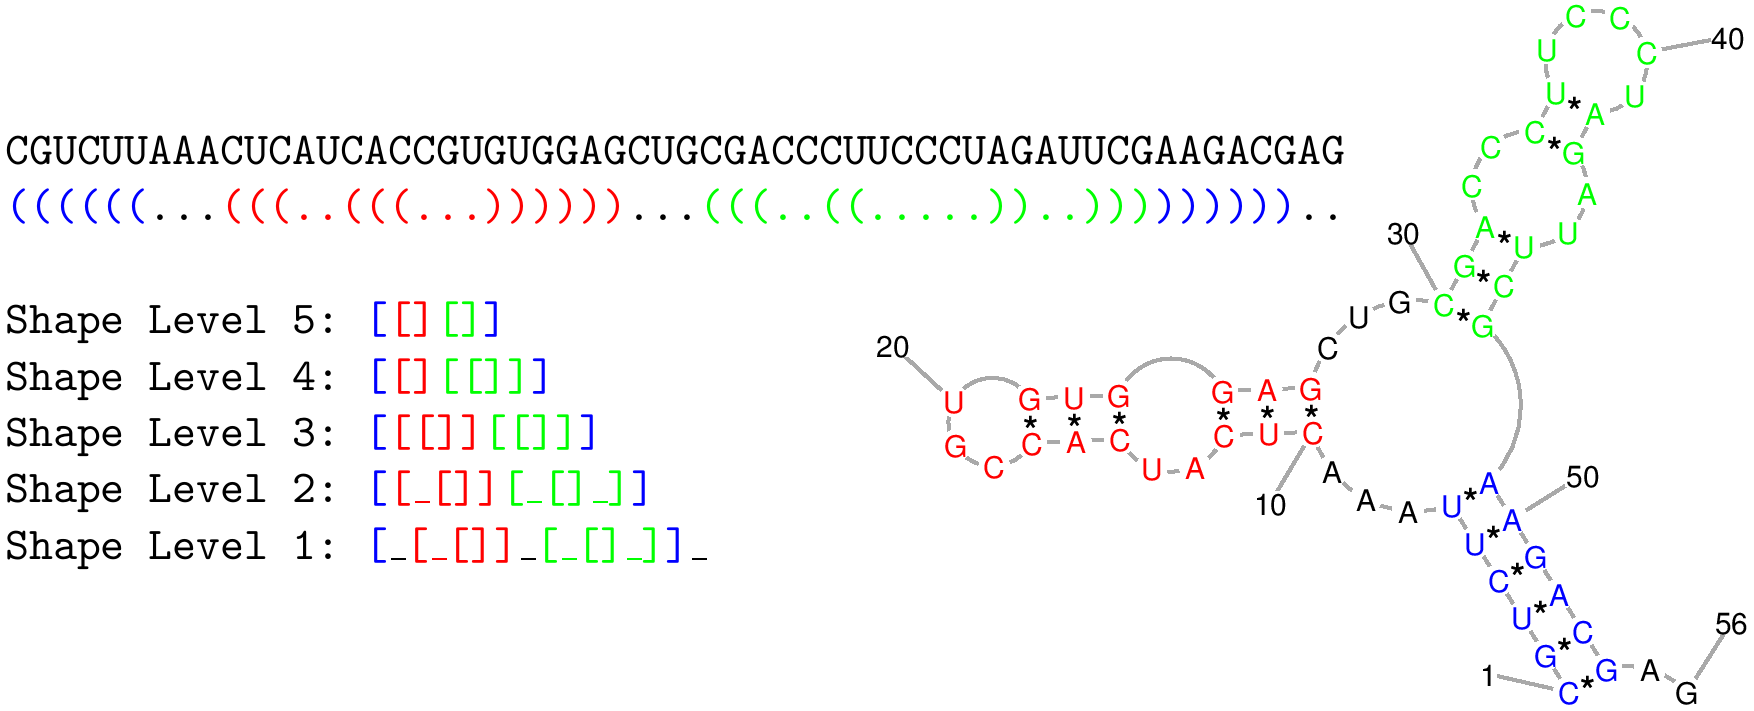 Illustration of one RNA shape and the levels of abstract representation.